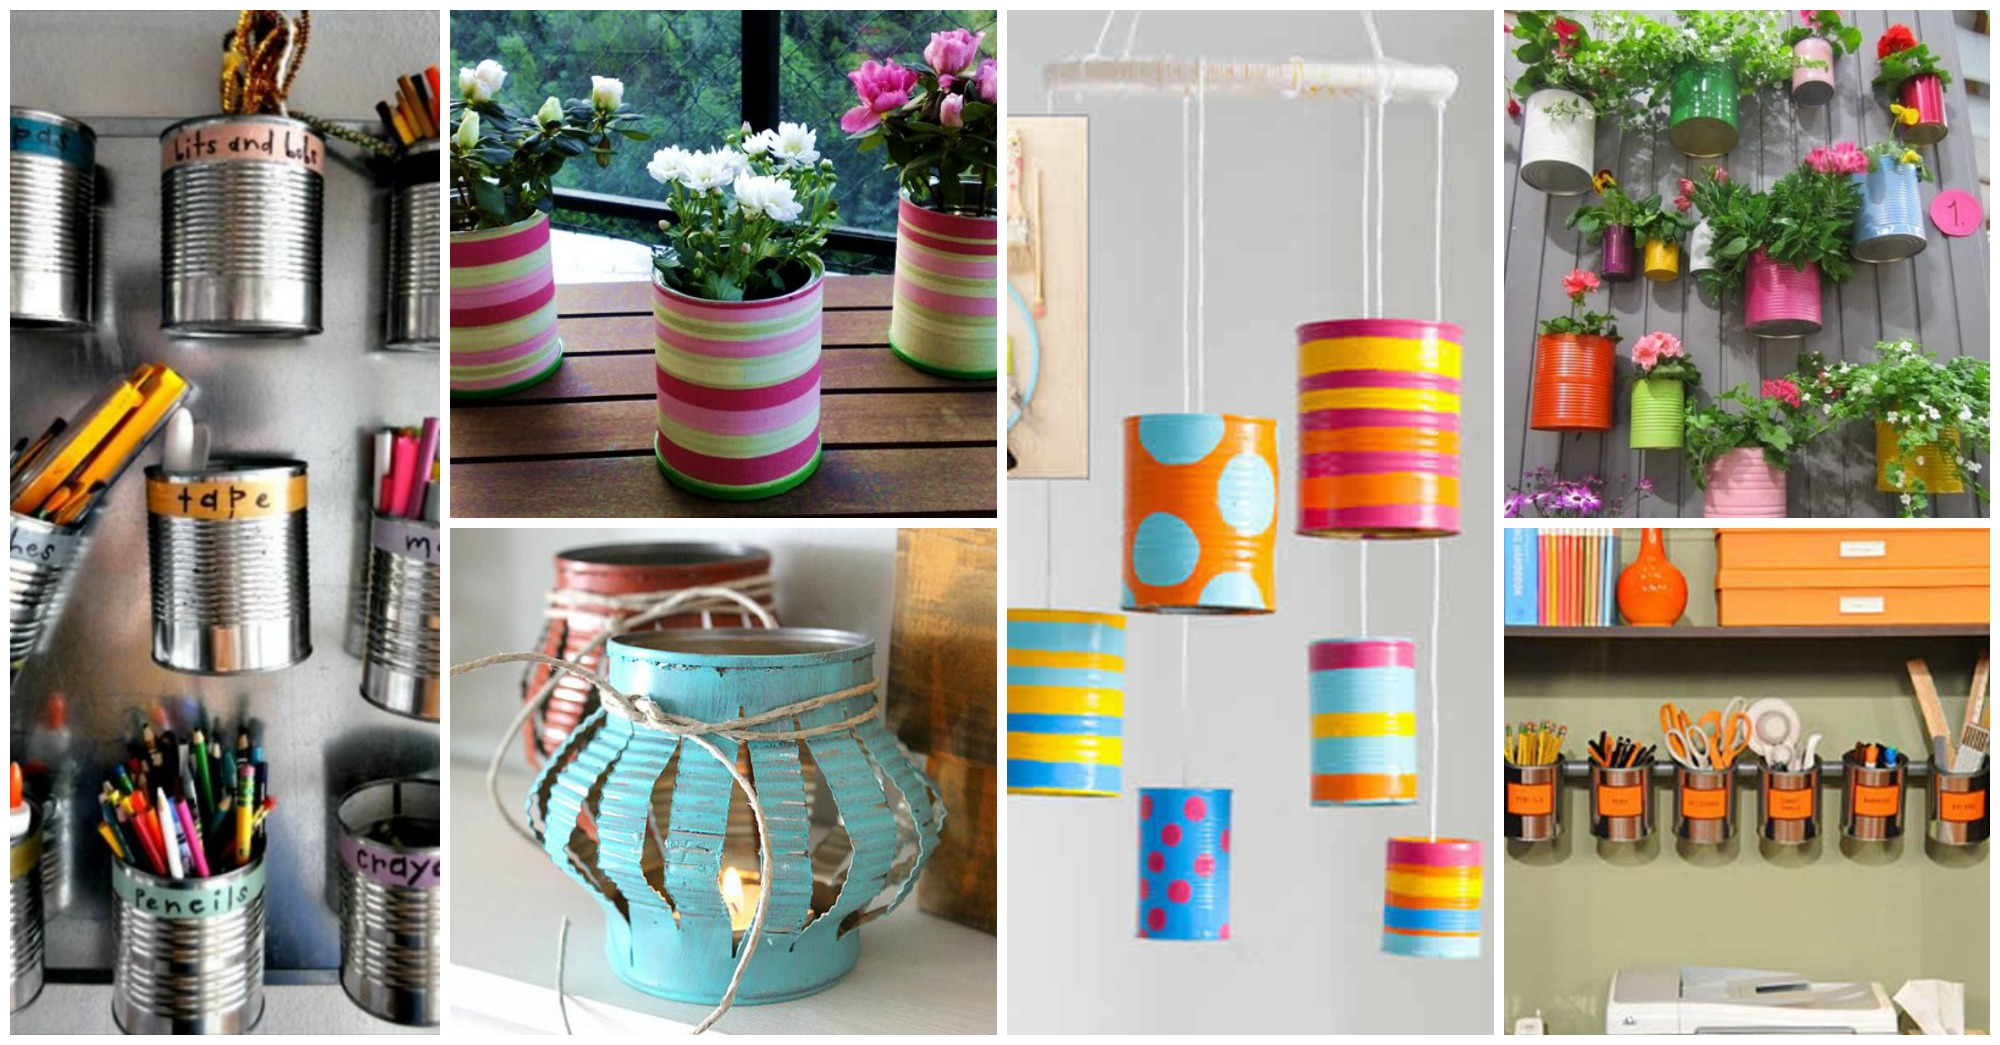 13 diy tin cans into adorable decor ideas for Home decor ideas from recycled materials